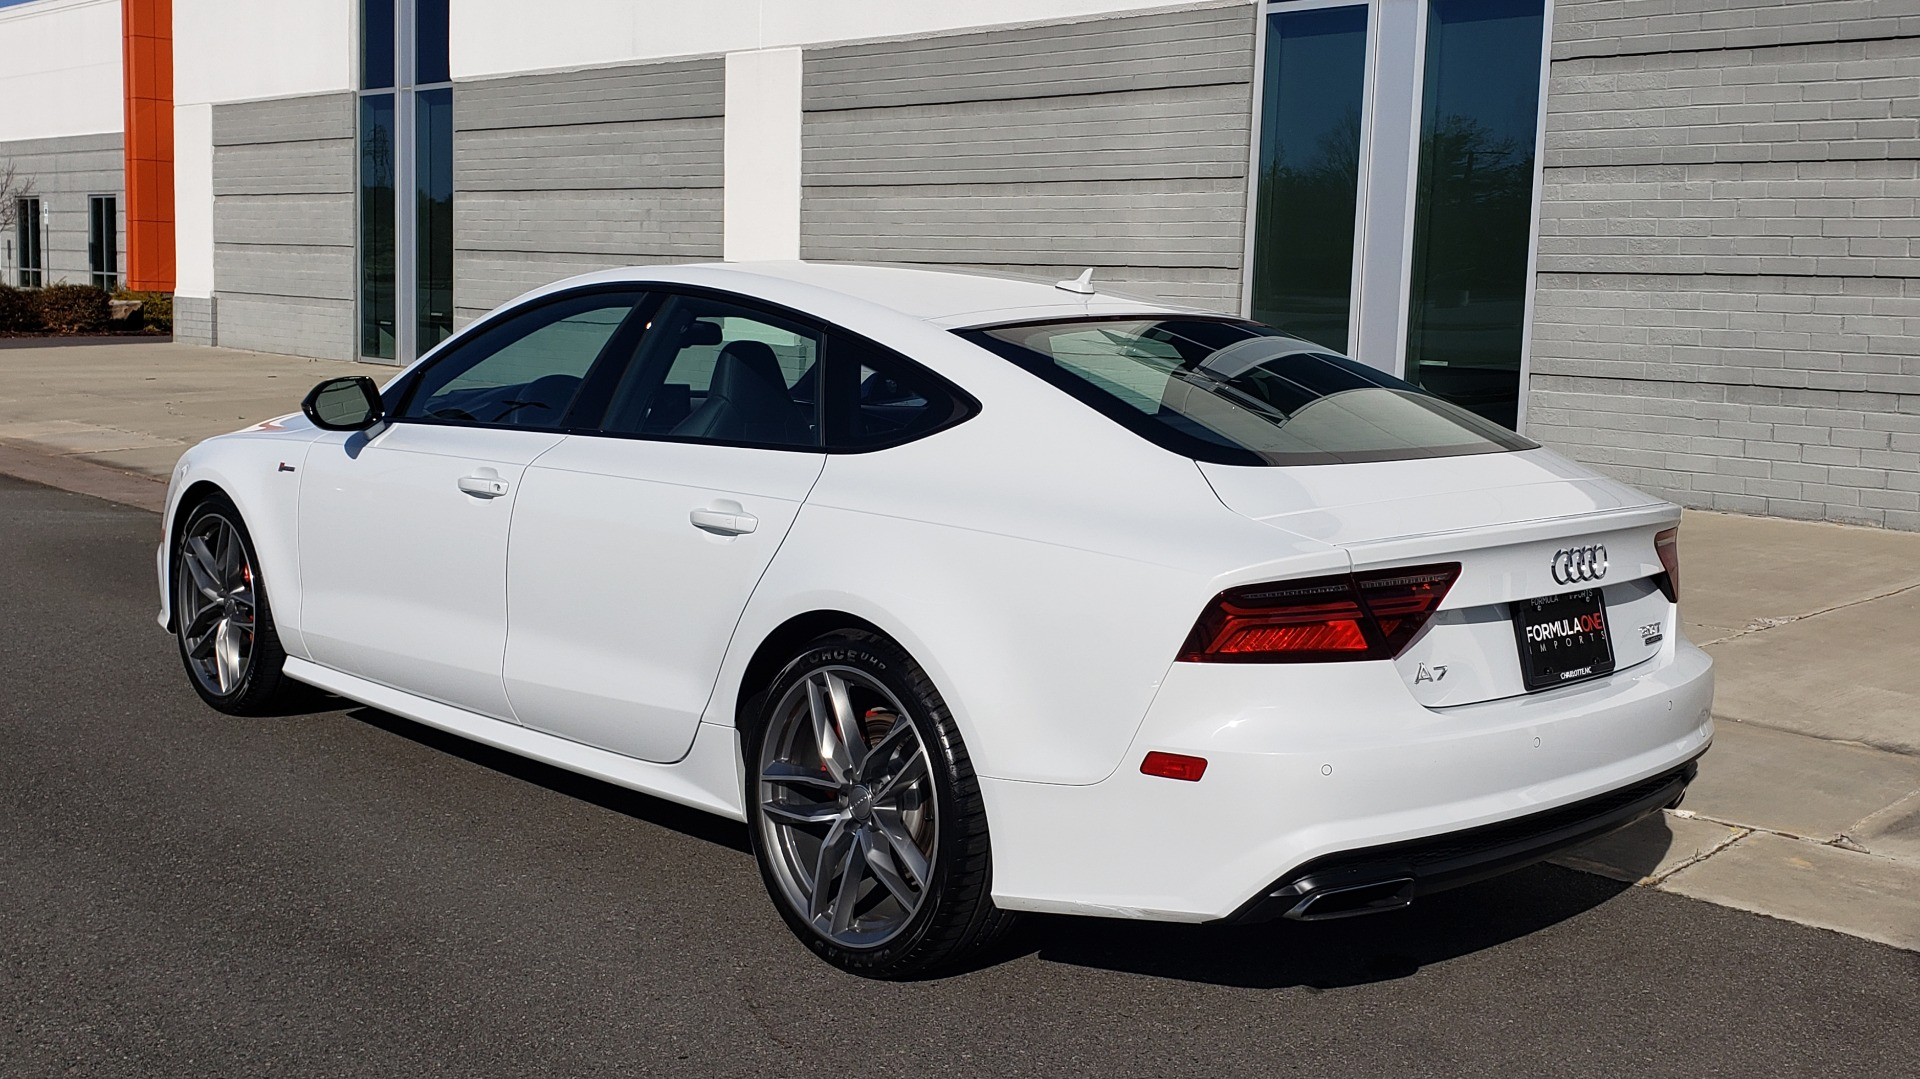 Used 2017 Audi A7 COMPETITION PRESTIGE 3.0T / NAV / DRVR ASST / ADAPT CRUISE for sale $41,995 at Formula Imports in Charlotte NC 28227 6